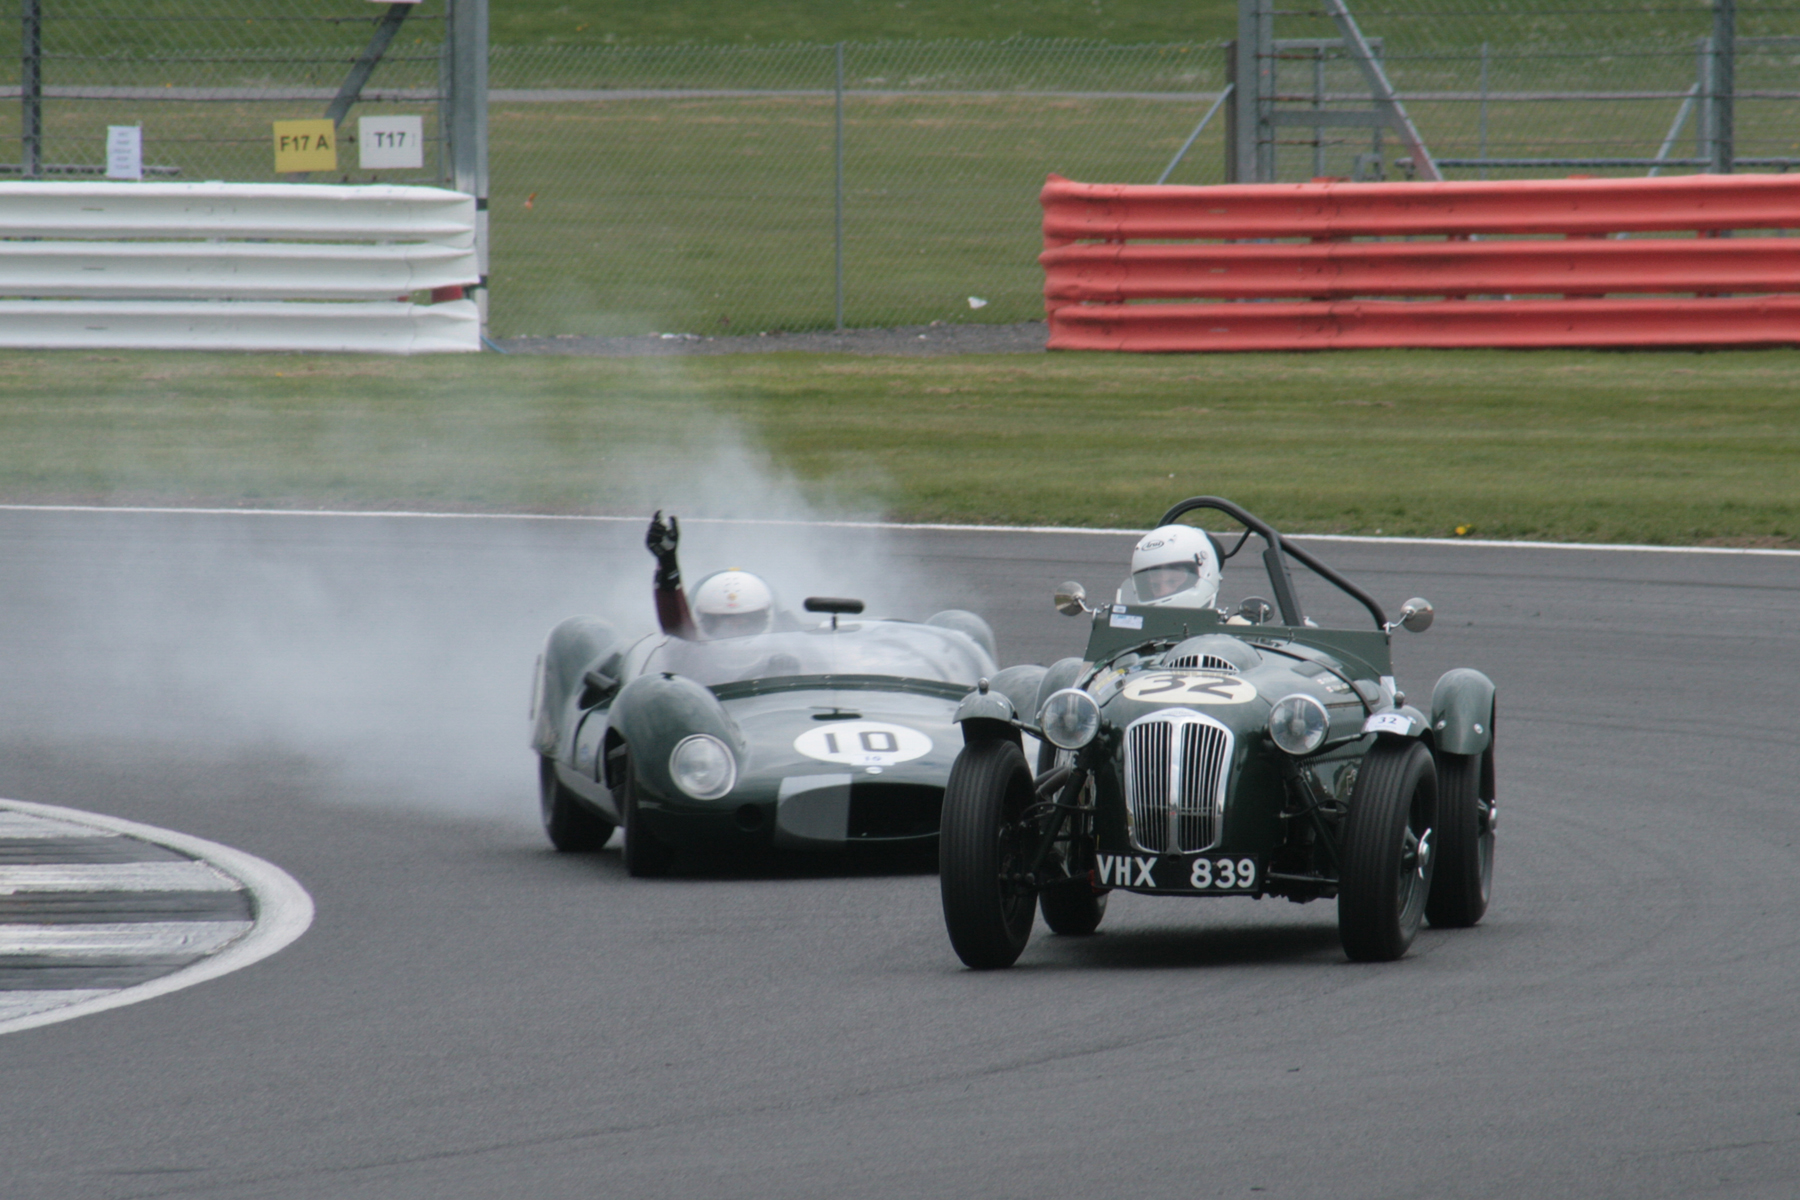 Thomas Ward exiting Luffield in his Frazer Nash Le Mans Replica, not quite lapped by the Cooper Monaco driven by Andrew Smith who is indicating his intention to pit and retire. Photo - John Turner